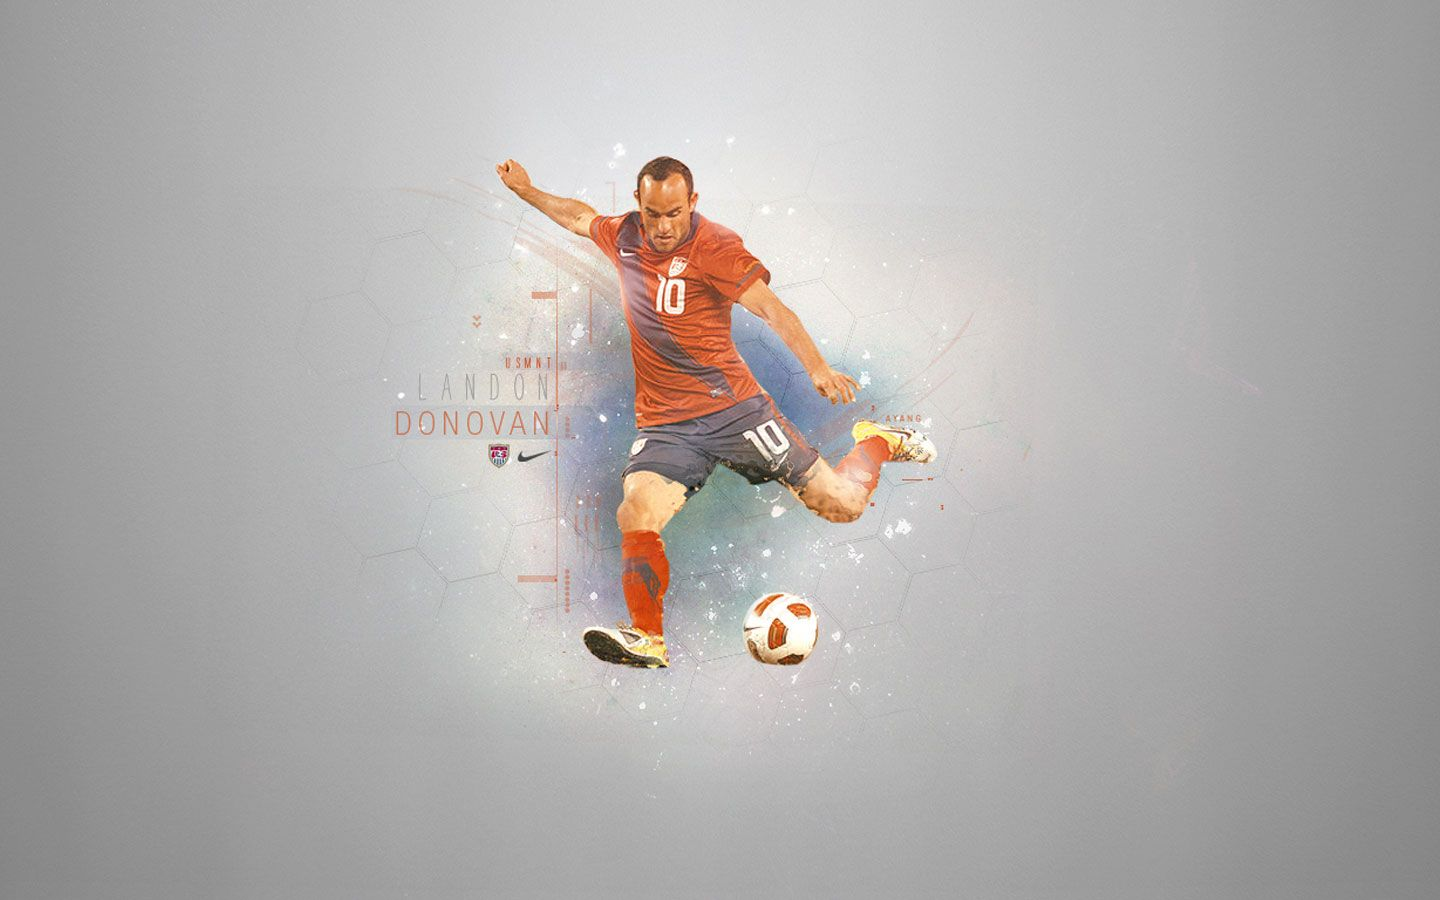 Landon Donovan Soccer Wallpaper - Football HD Wallpapers